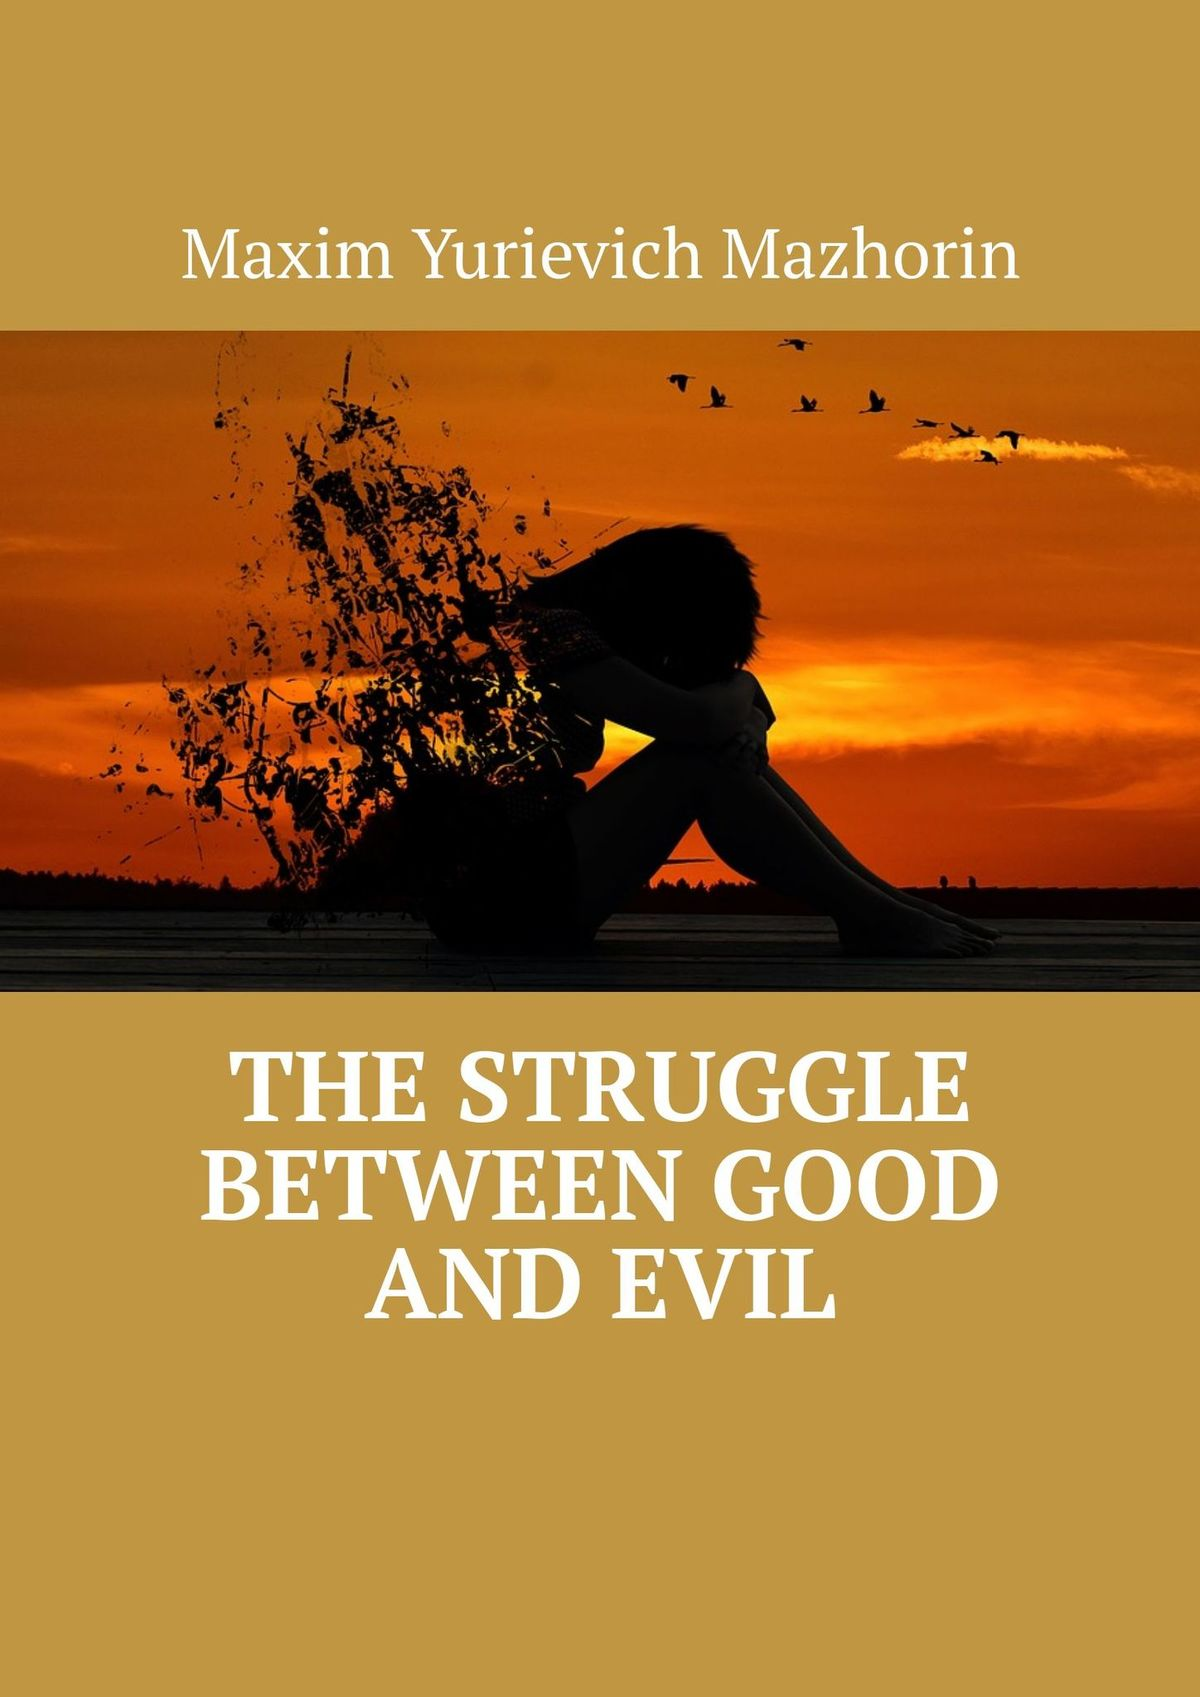 Maxim Yurievich Mazhorin The struggle between good and evil clarence darrow resist not evil